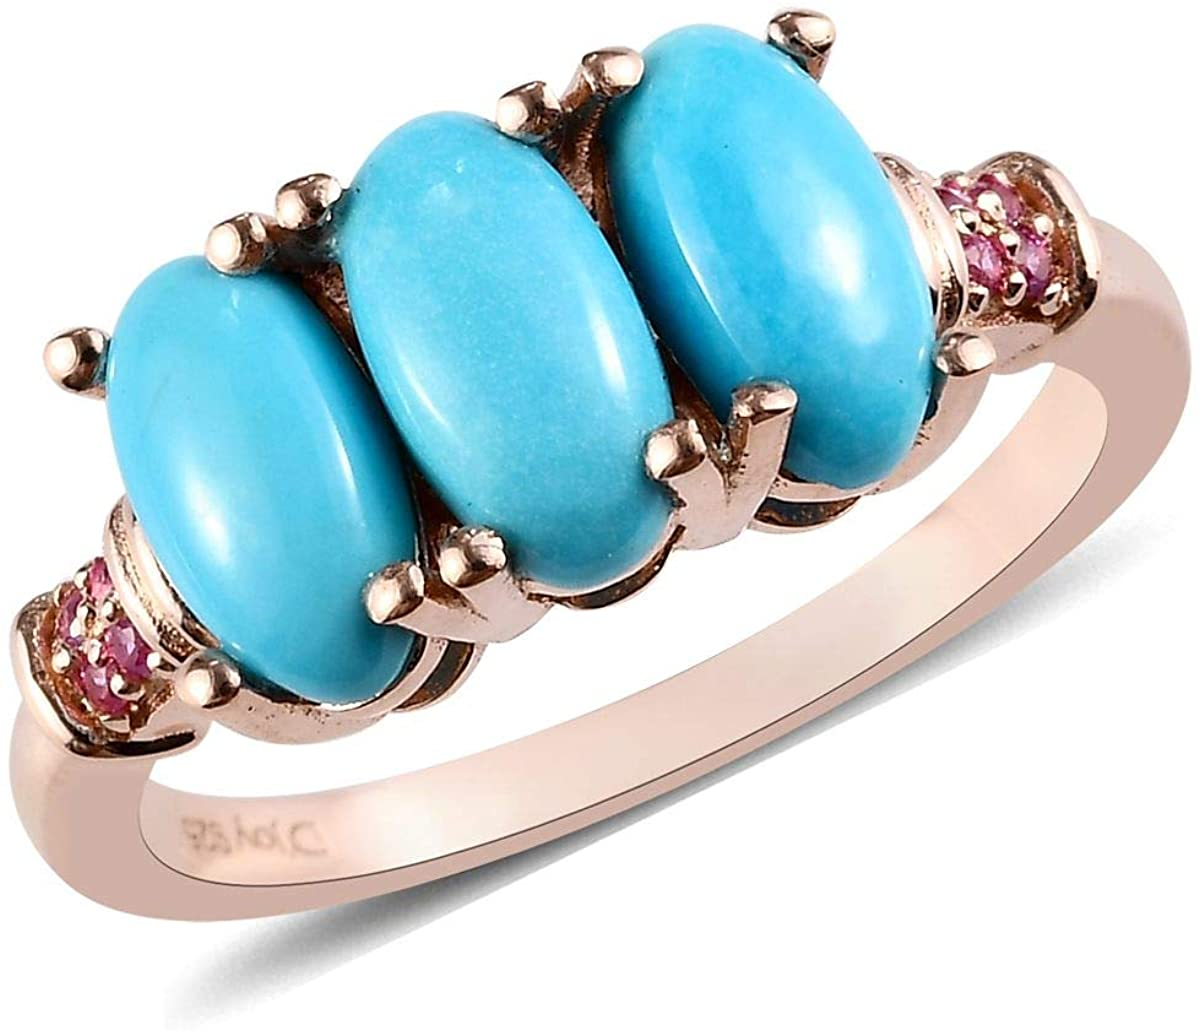 925 Sterling Silver Rose Gold Plated Oval Sleeping Beauty Turquoise Pink Sapphire Promise Ring Wedding Anniversary Jewelry for Women Size 9